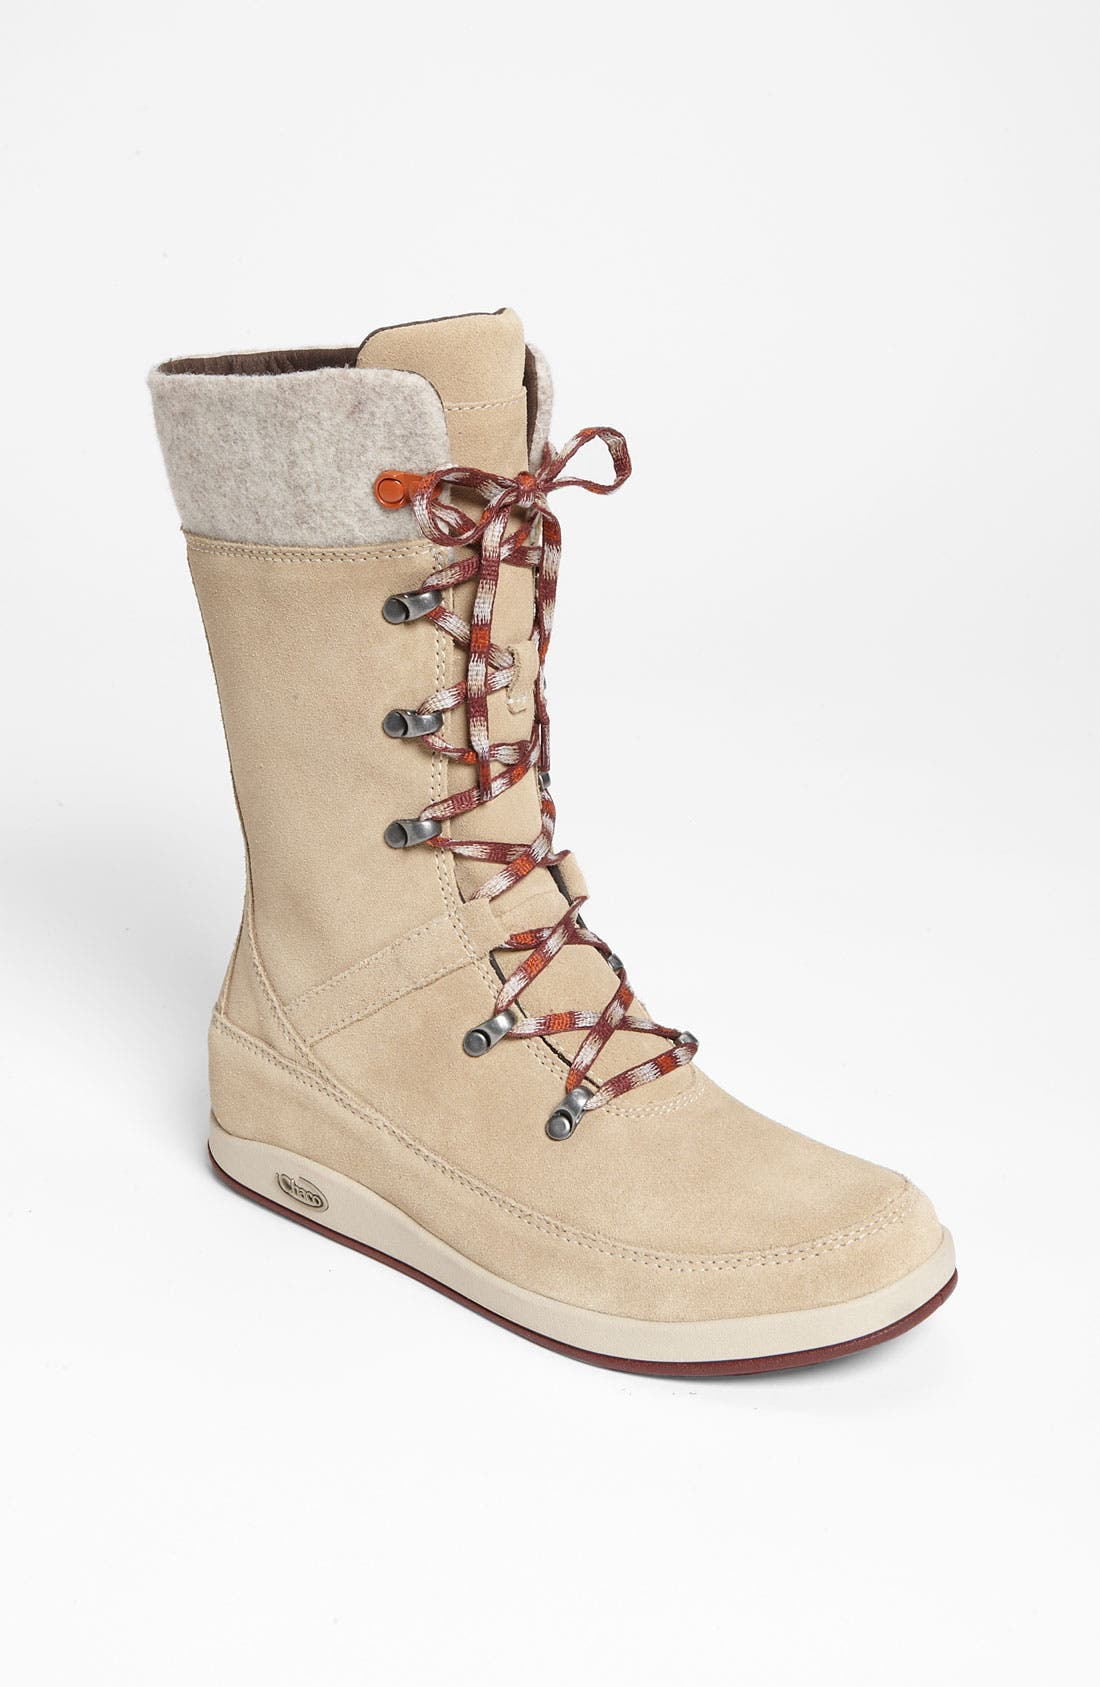 Alternate Image 1 Selected - Chaco 'Uma' Boot